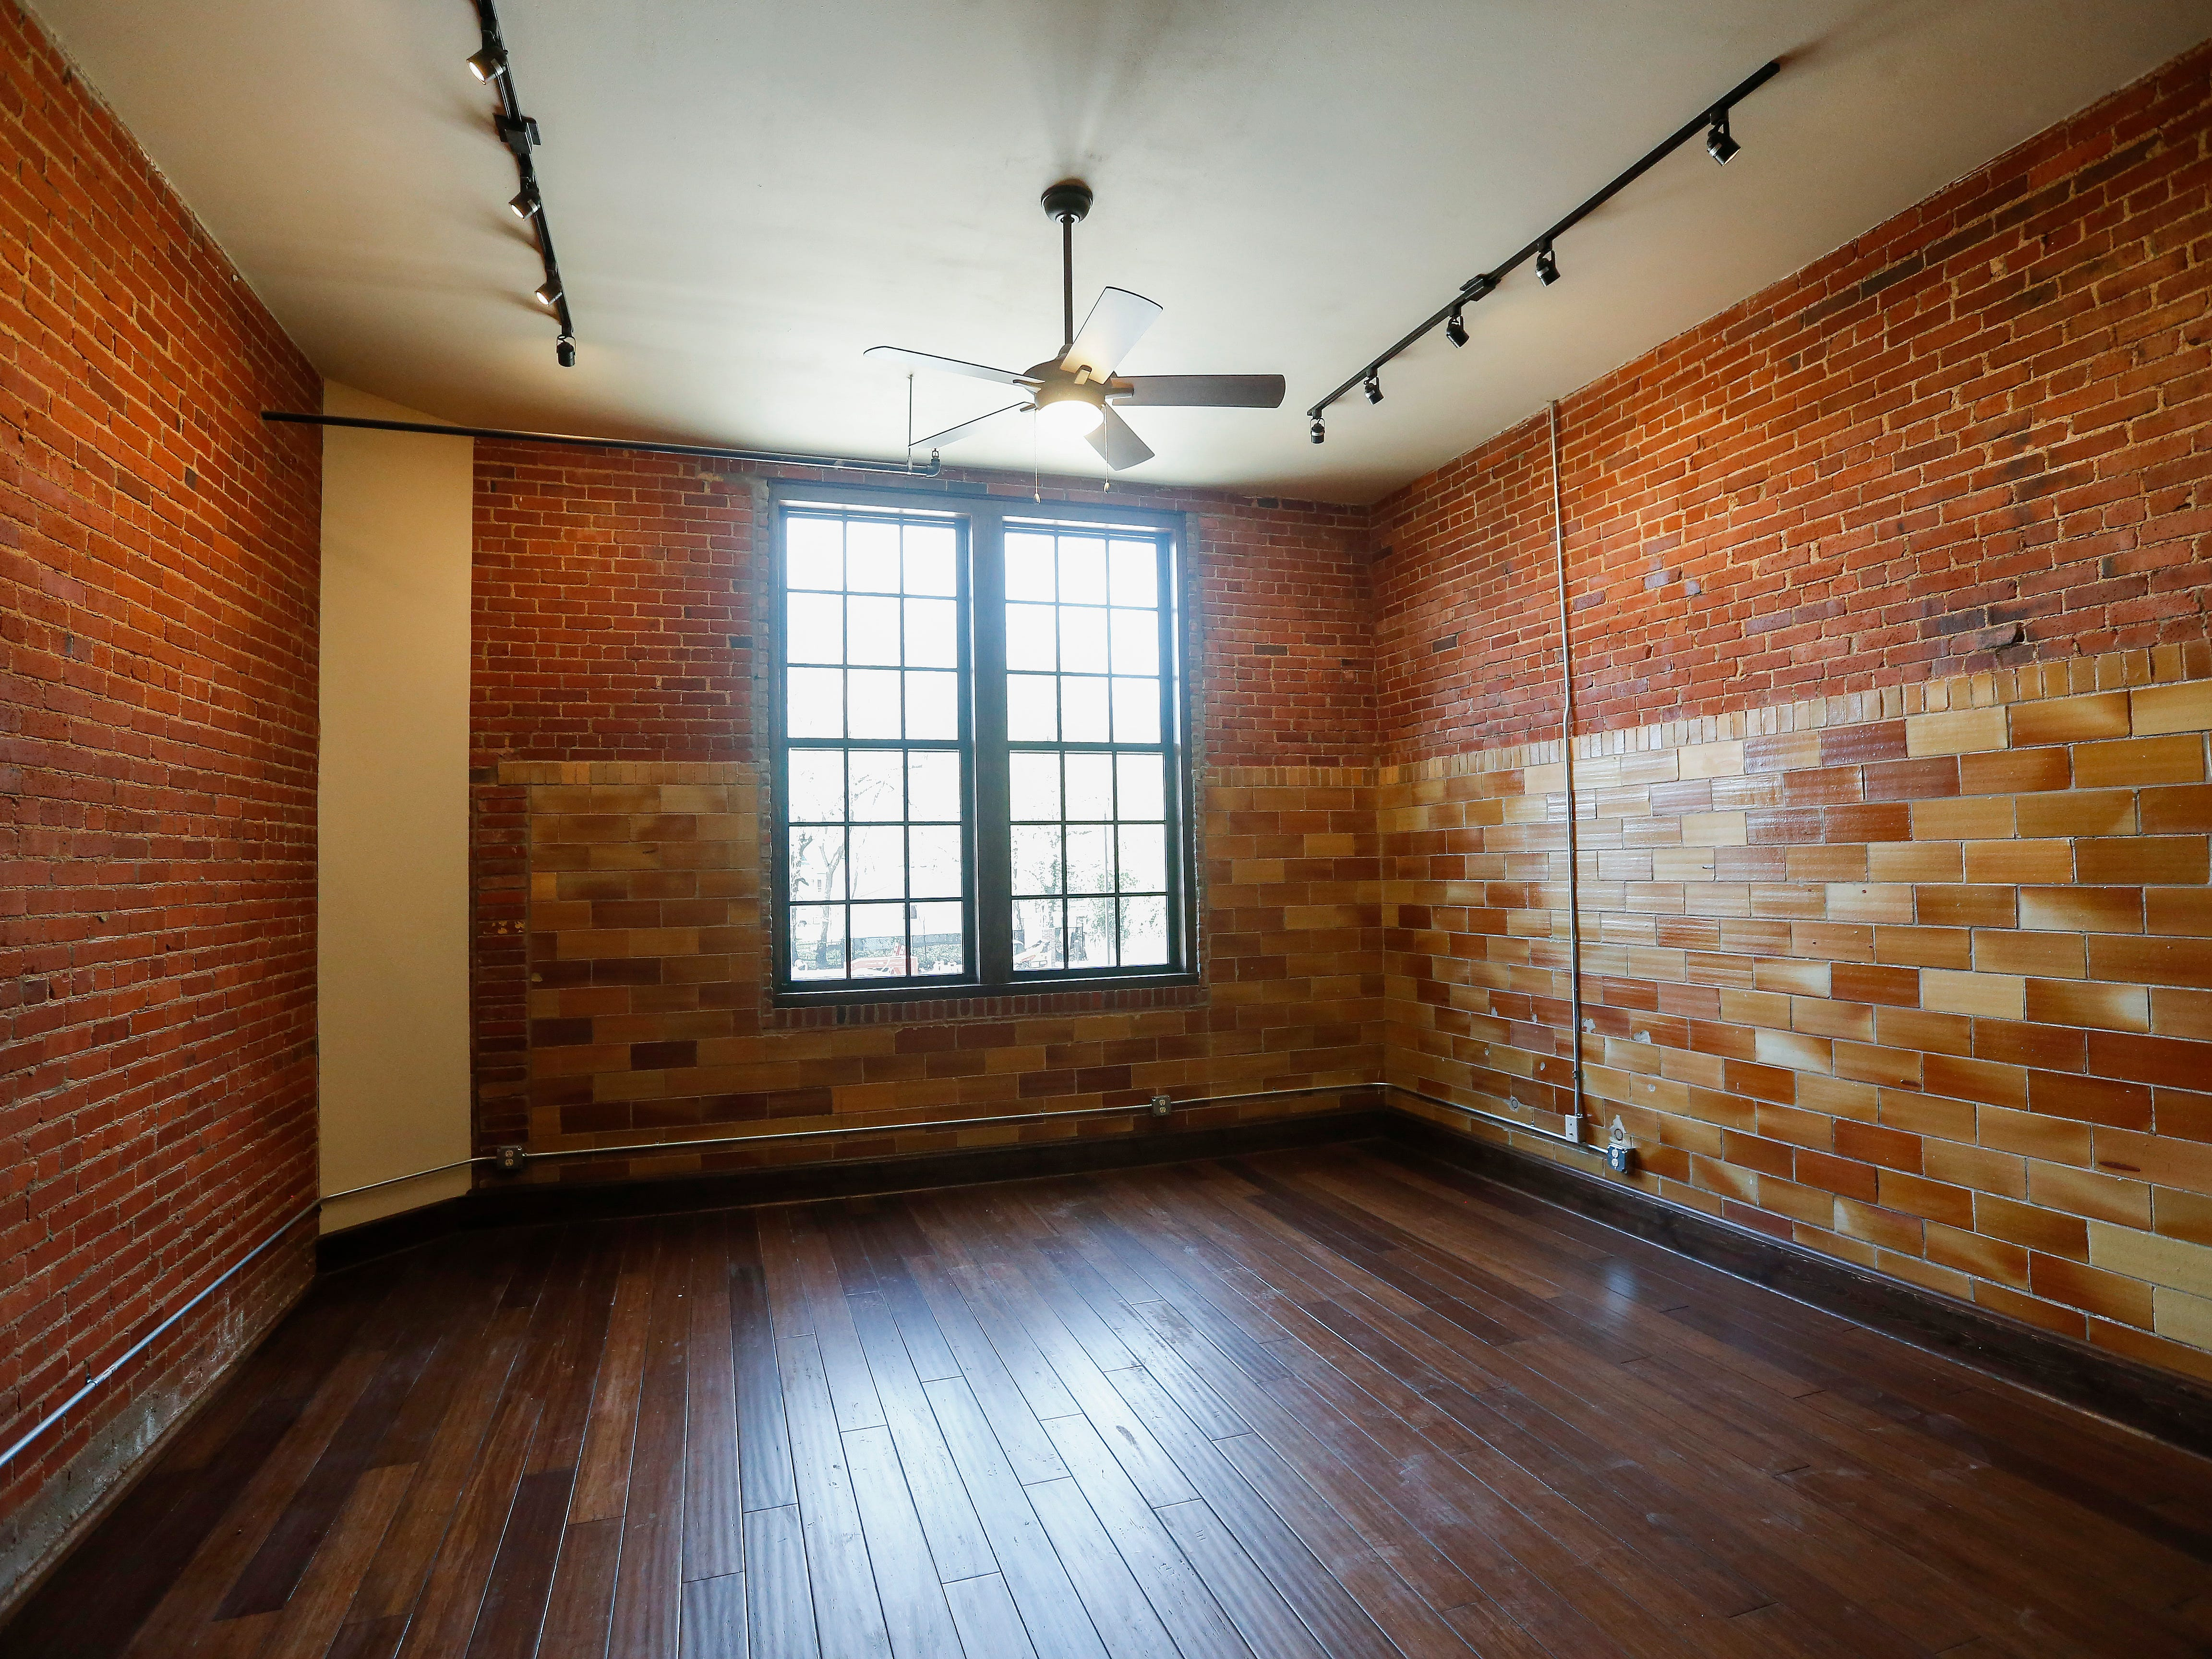 This apartment is located on the second floor at the Bailey School Lofts on Central Street near Campbell Avenue.